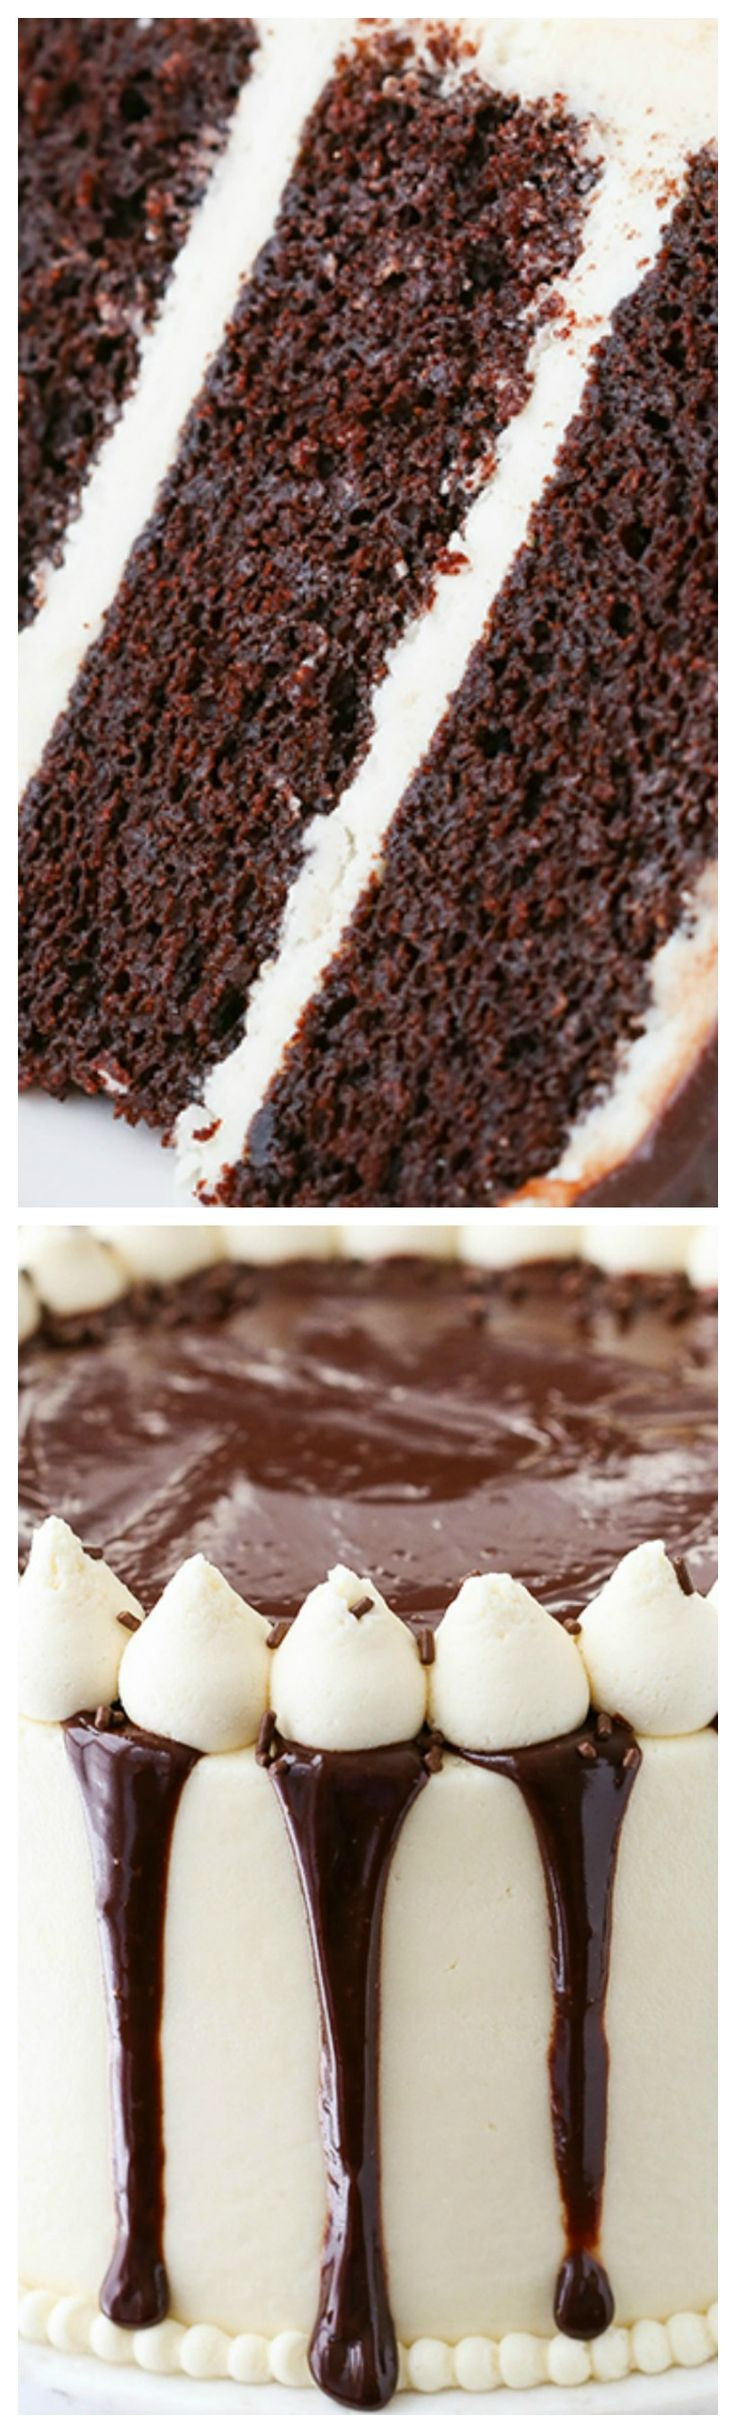 Baileys Chocolate Cake ~ Combines two favorite things – Baileys and chocolate – in one amazing, moist and fun layer cake!